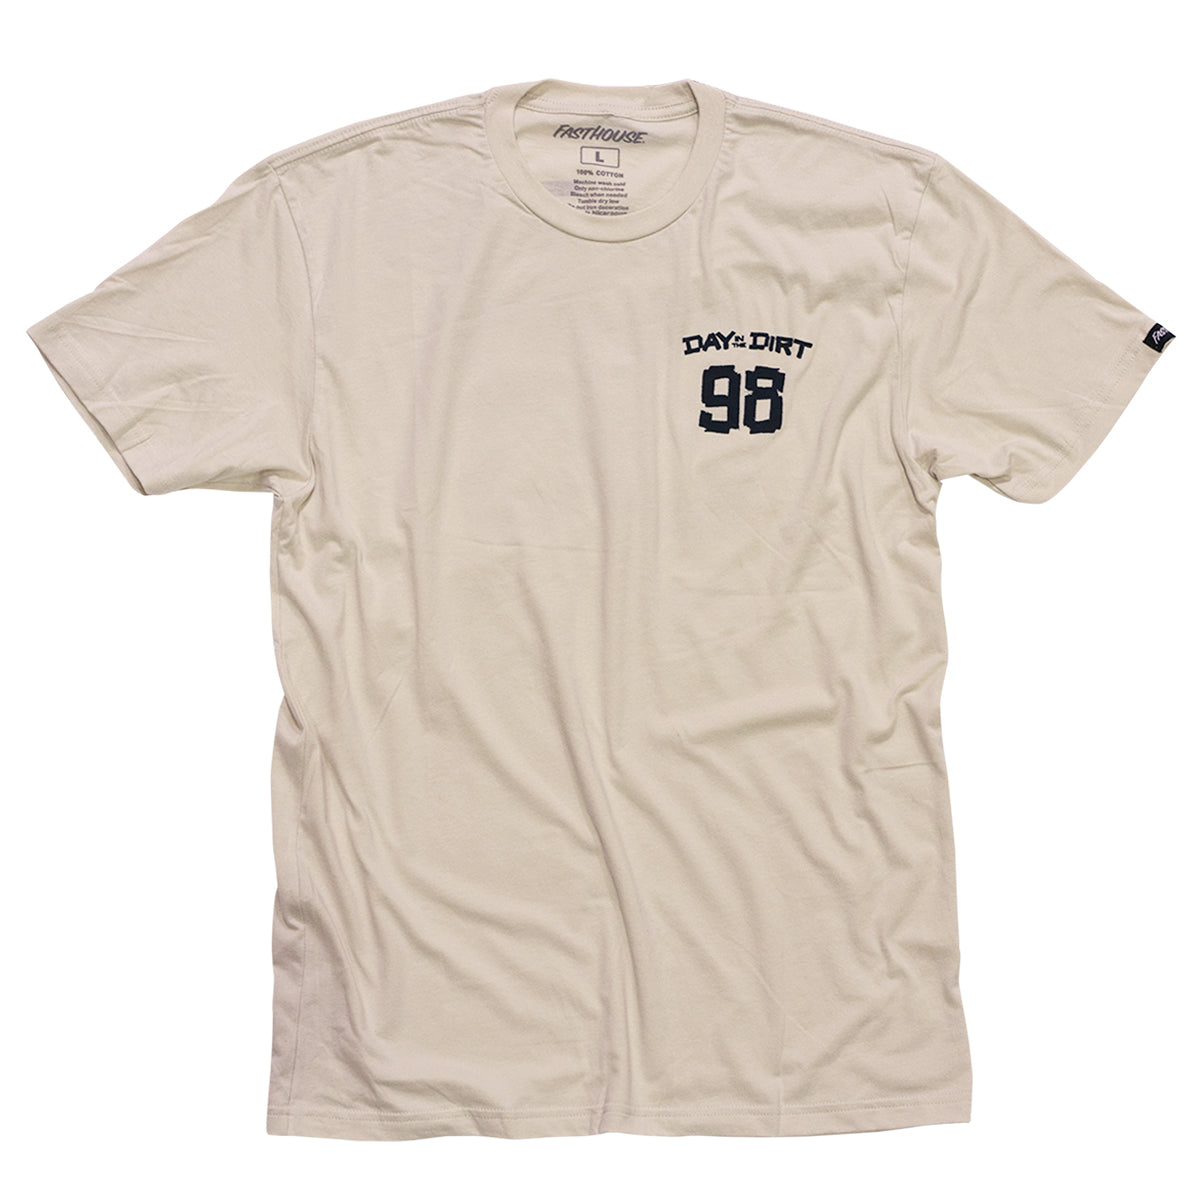 Day in the Dirt 98 Tee  - Sand